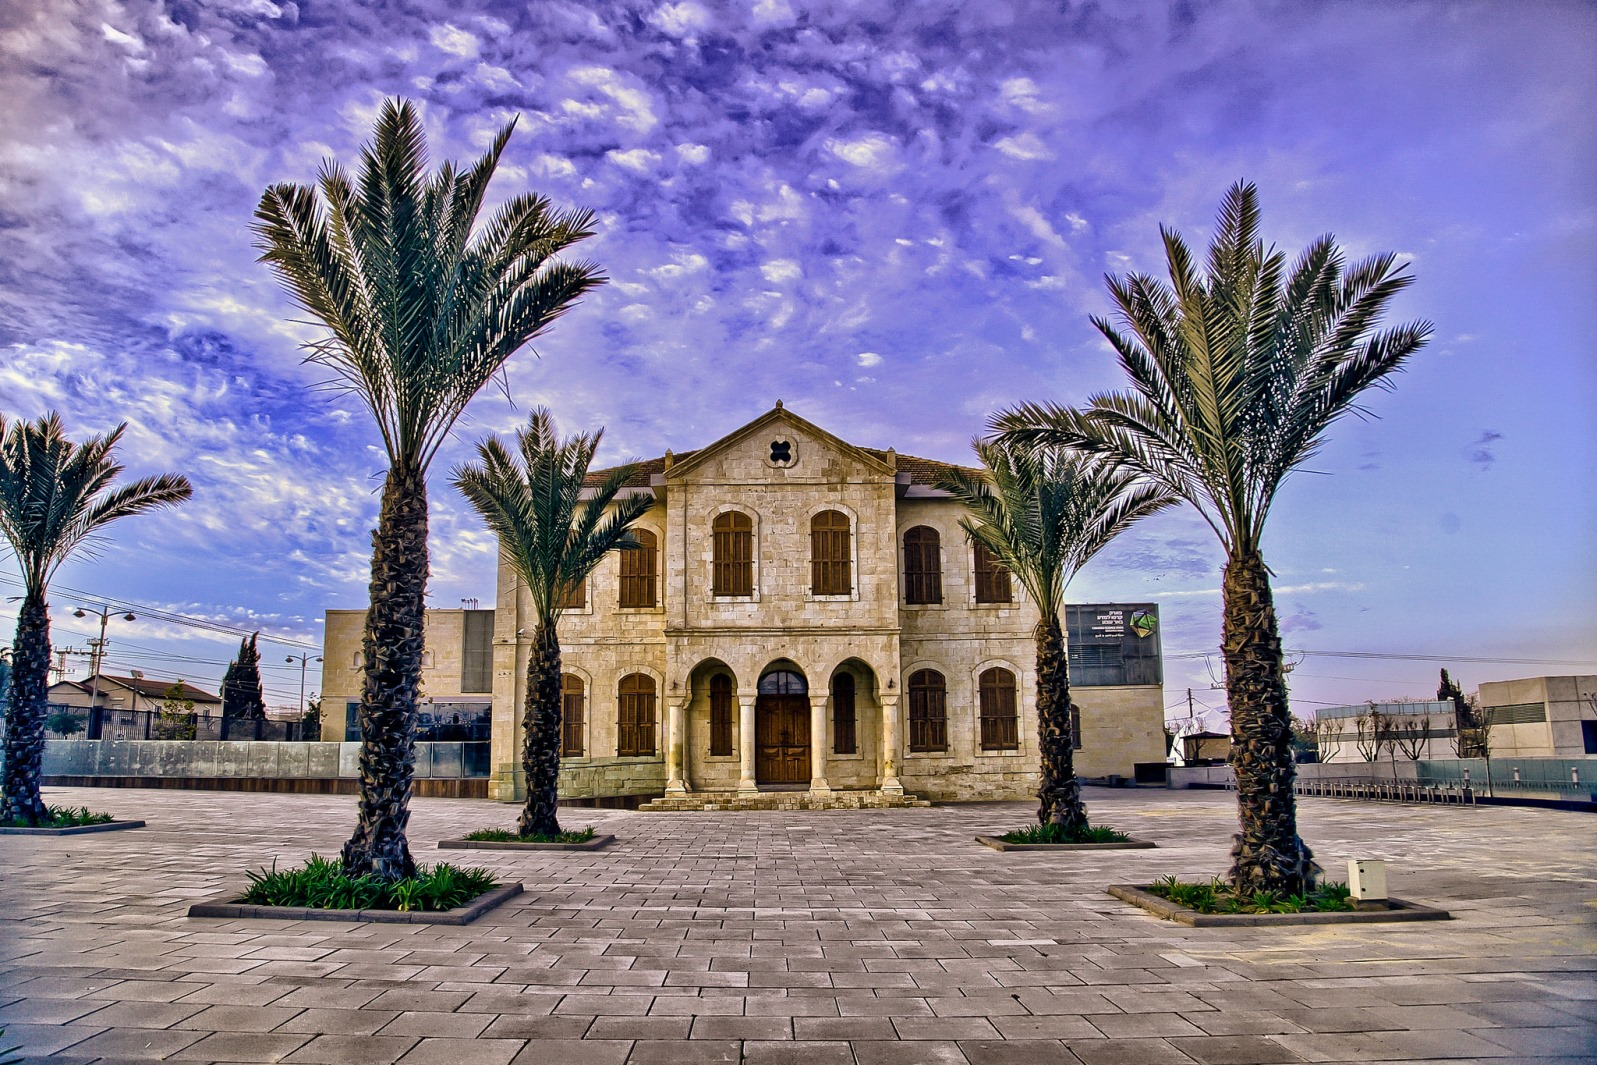 The Carasso Science Park, the largest museum of its kind in Israel, is fronted by a vintage Turkish building. Photo courtesy